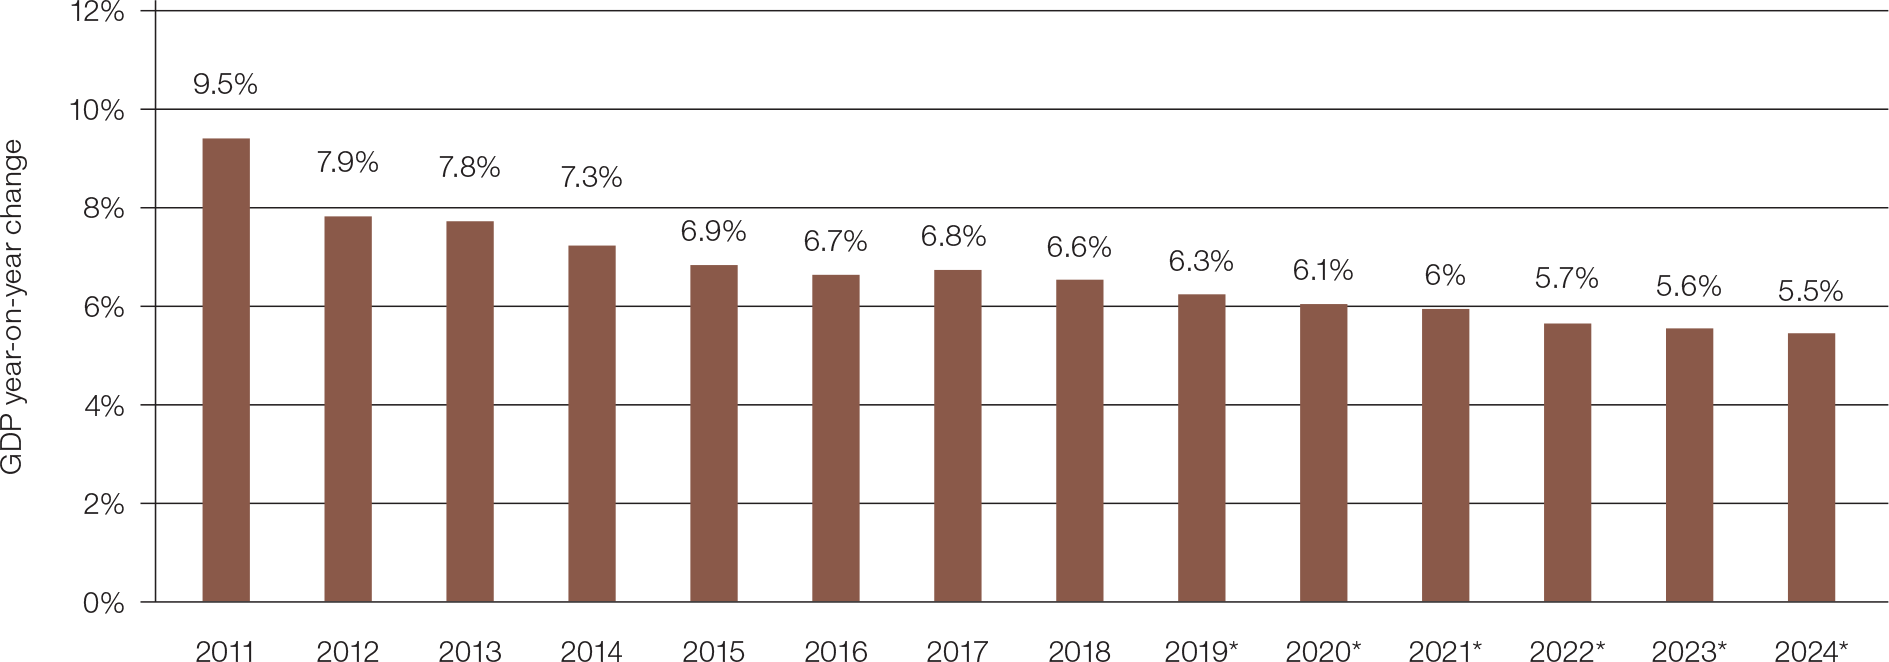 China: growth rate of real gross domestic product (GDP) from 2011 to 2024